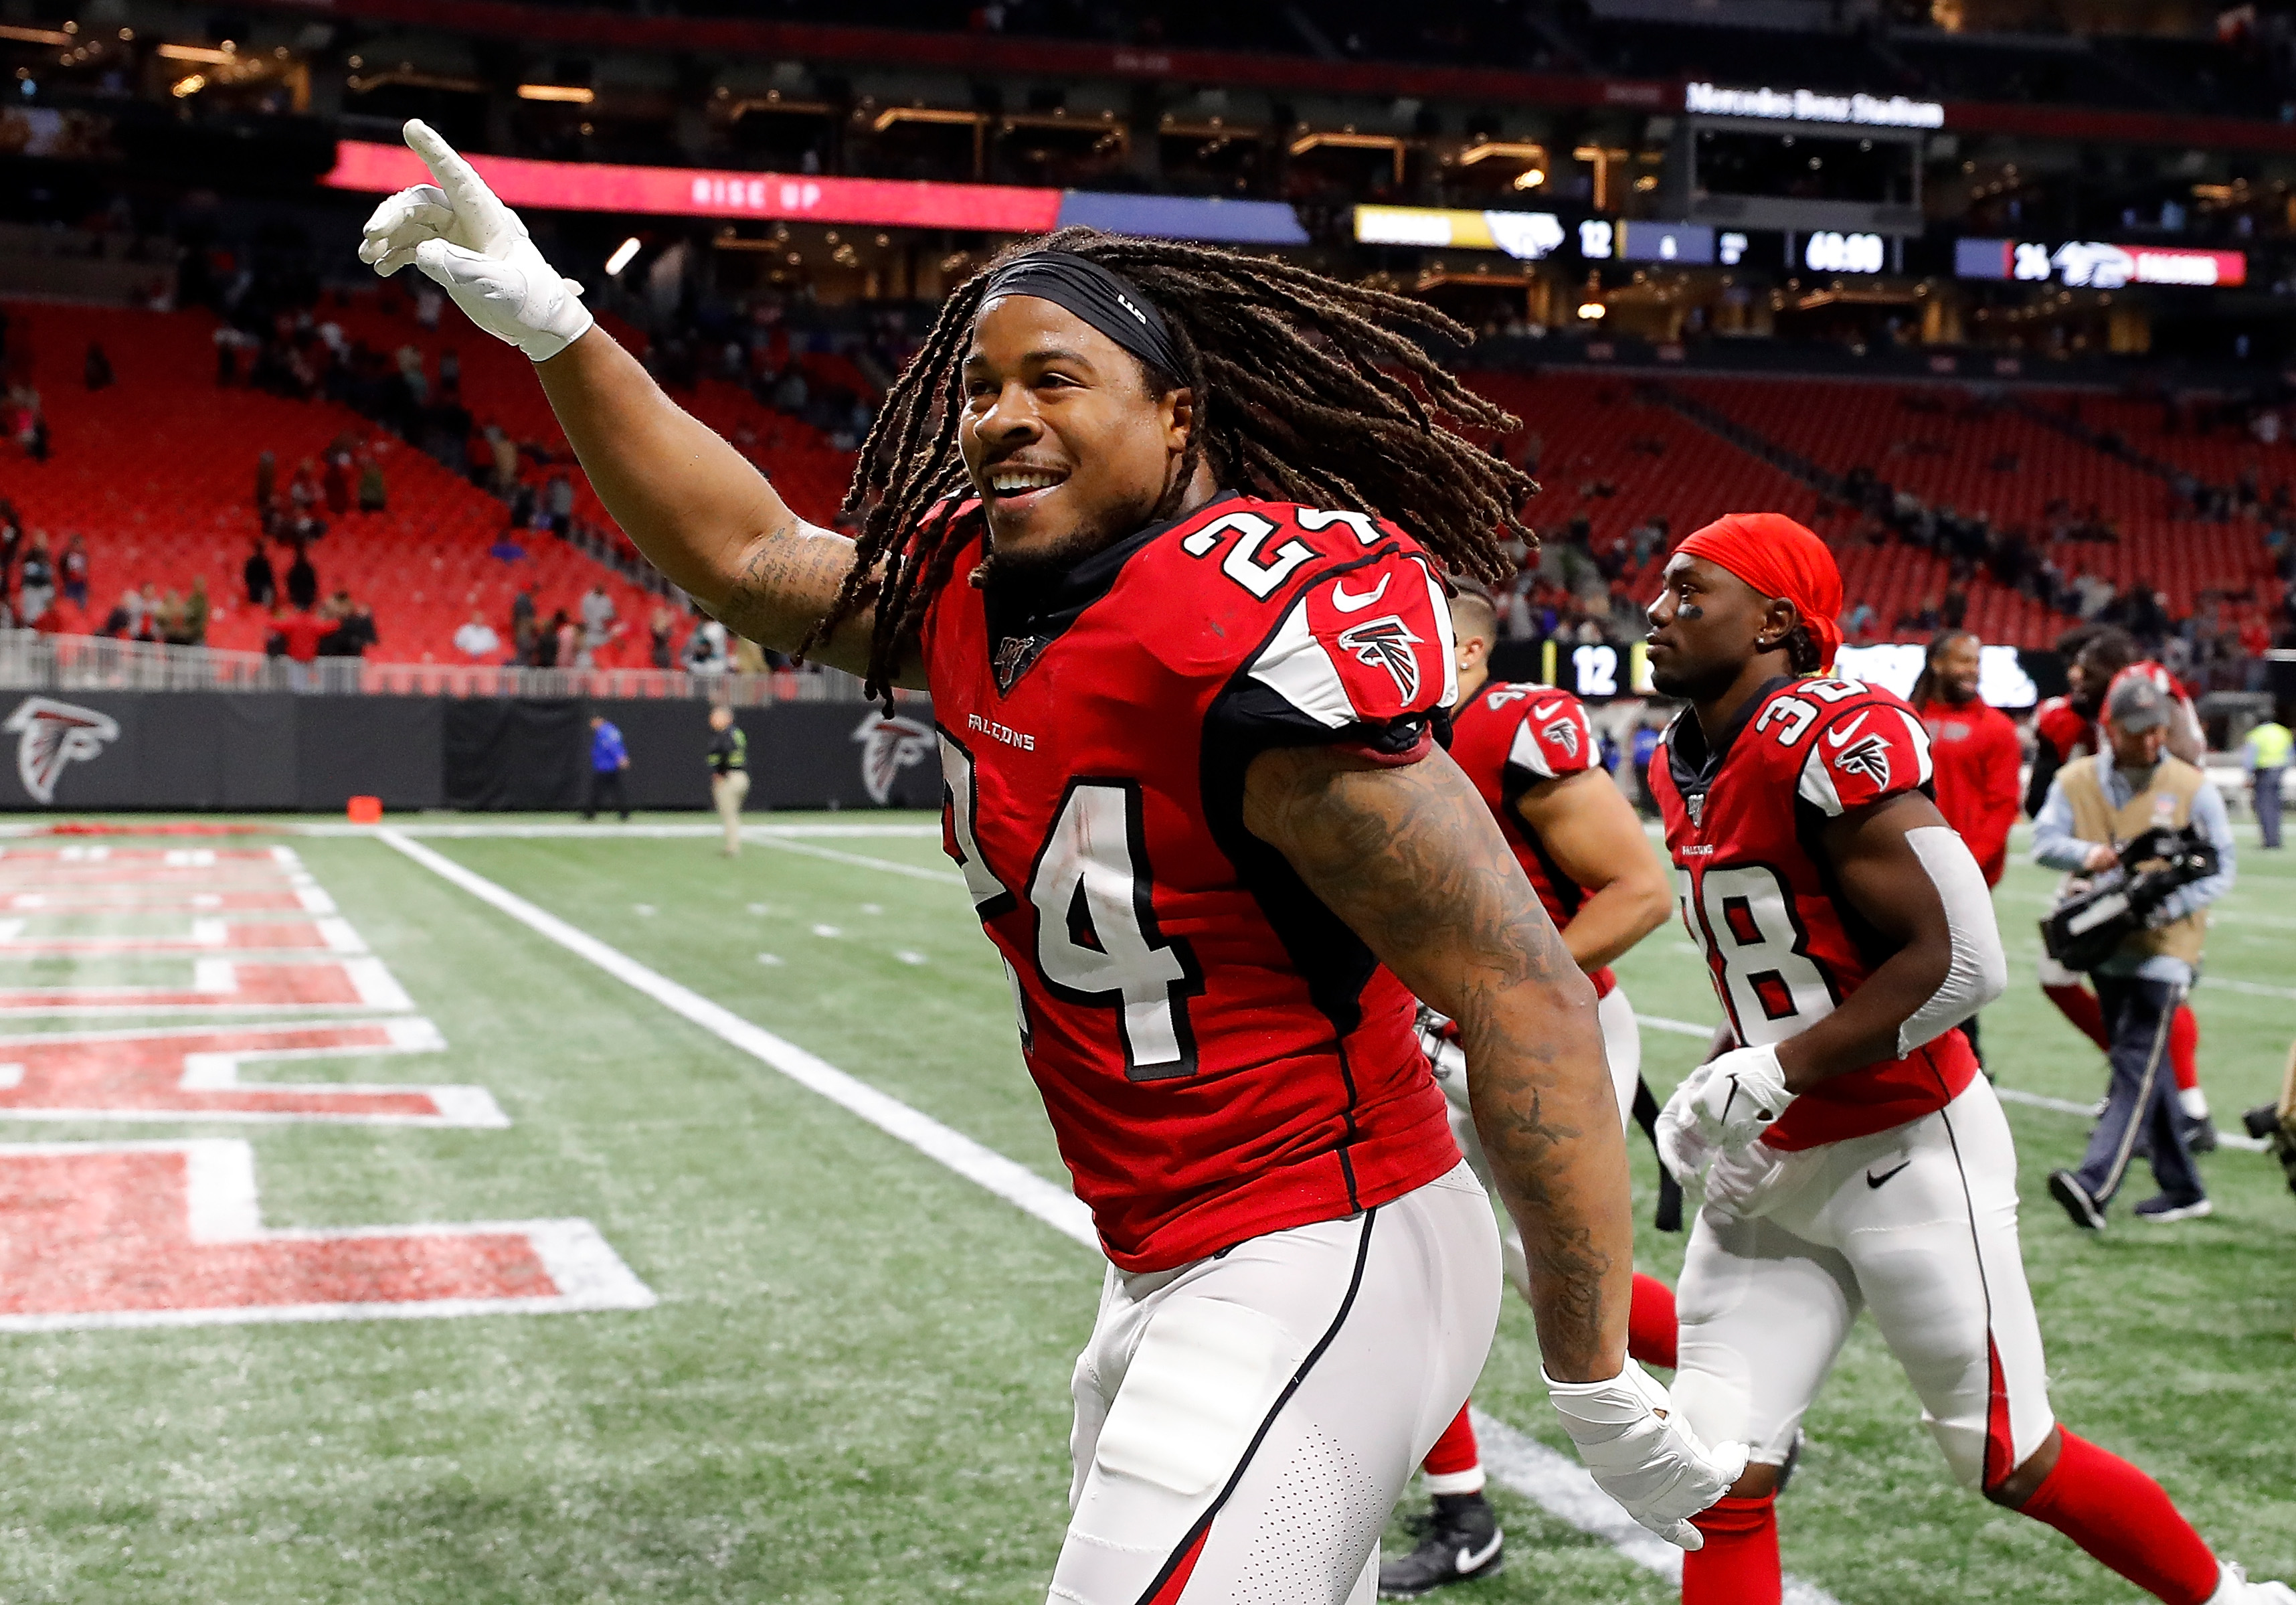 The NFL season is just two months away, and Devonta Freeman is still without a job. Where should the former Falcons RB land?